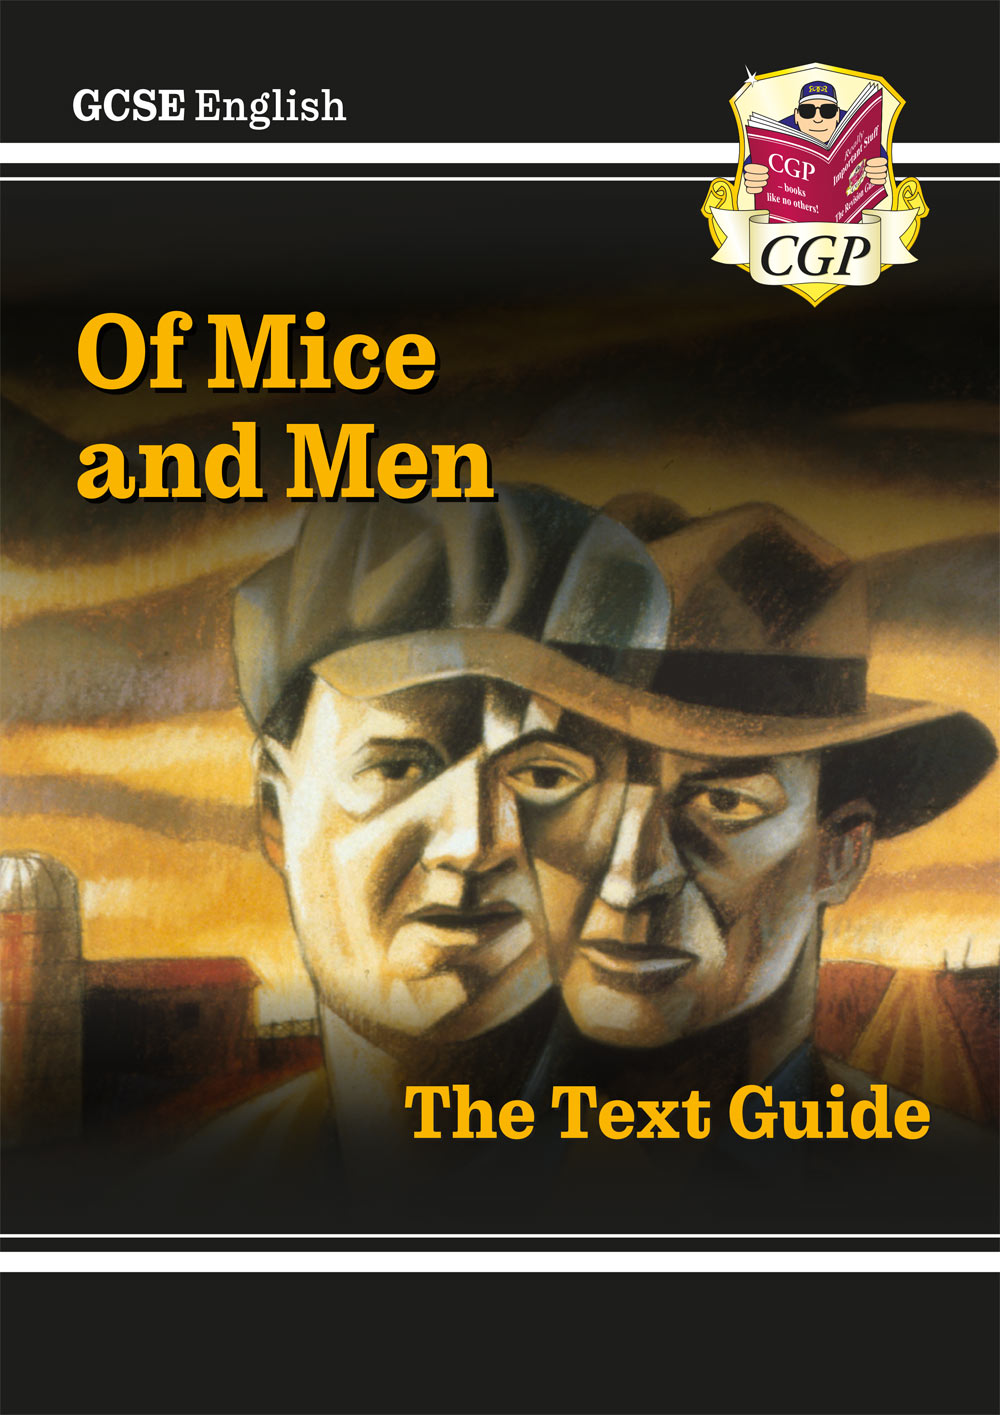 ETO44 - GCSE English Text Guide - Of Mice & Men